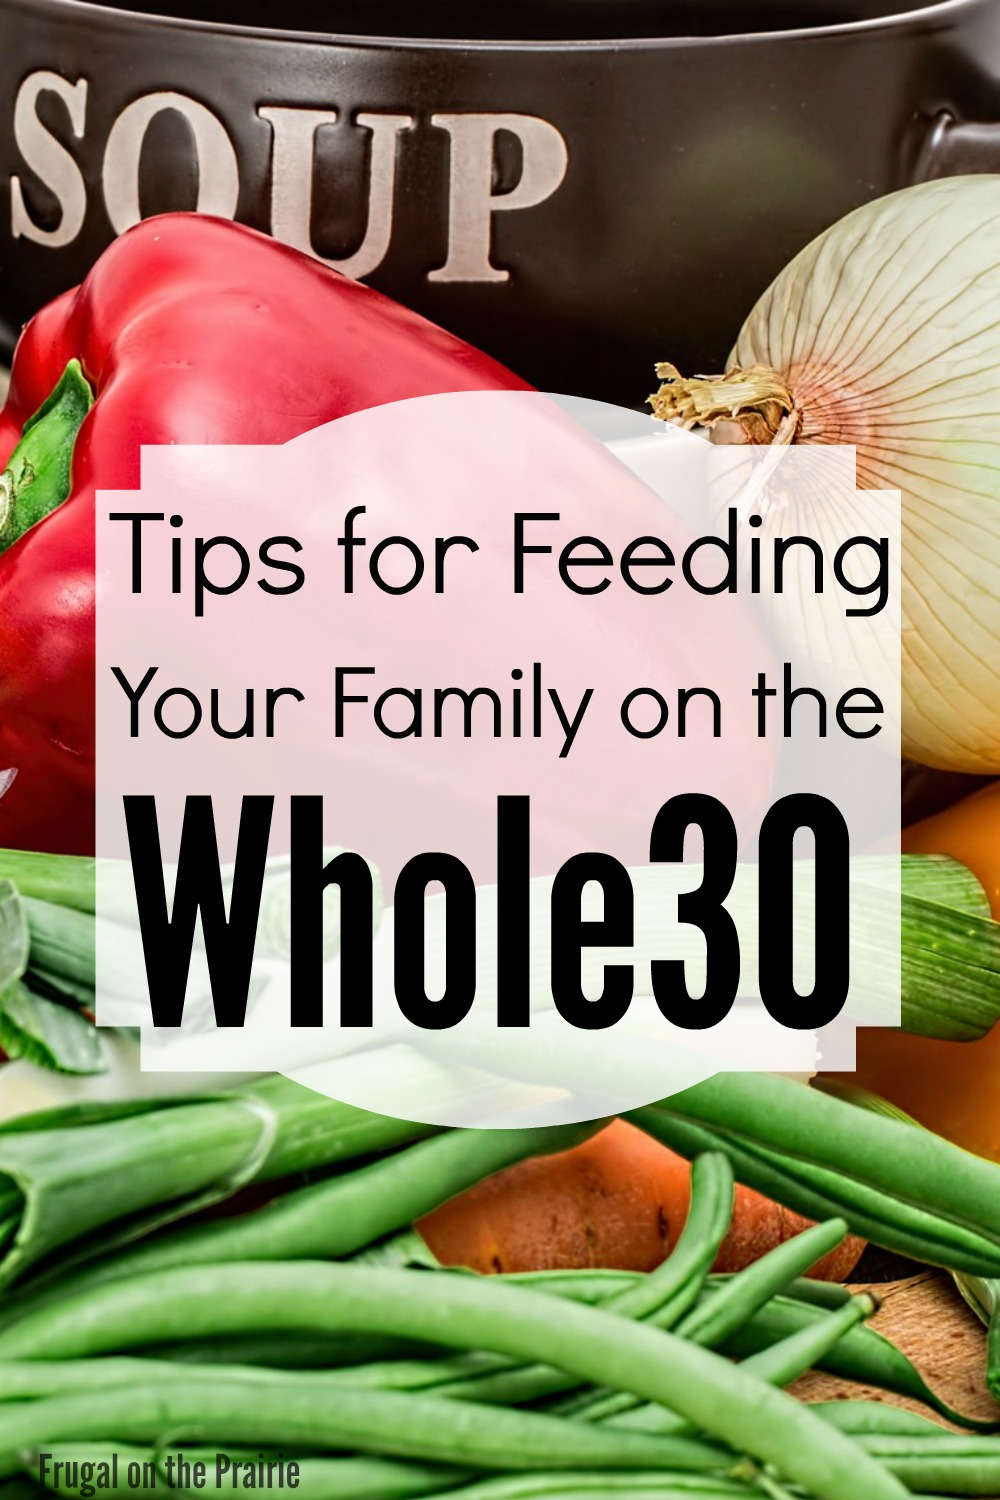 Is eating healthier a part of your New Year Resolutions? I've got some great tips for feeding your family on the Whole30!